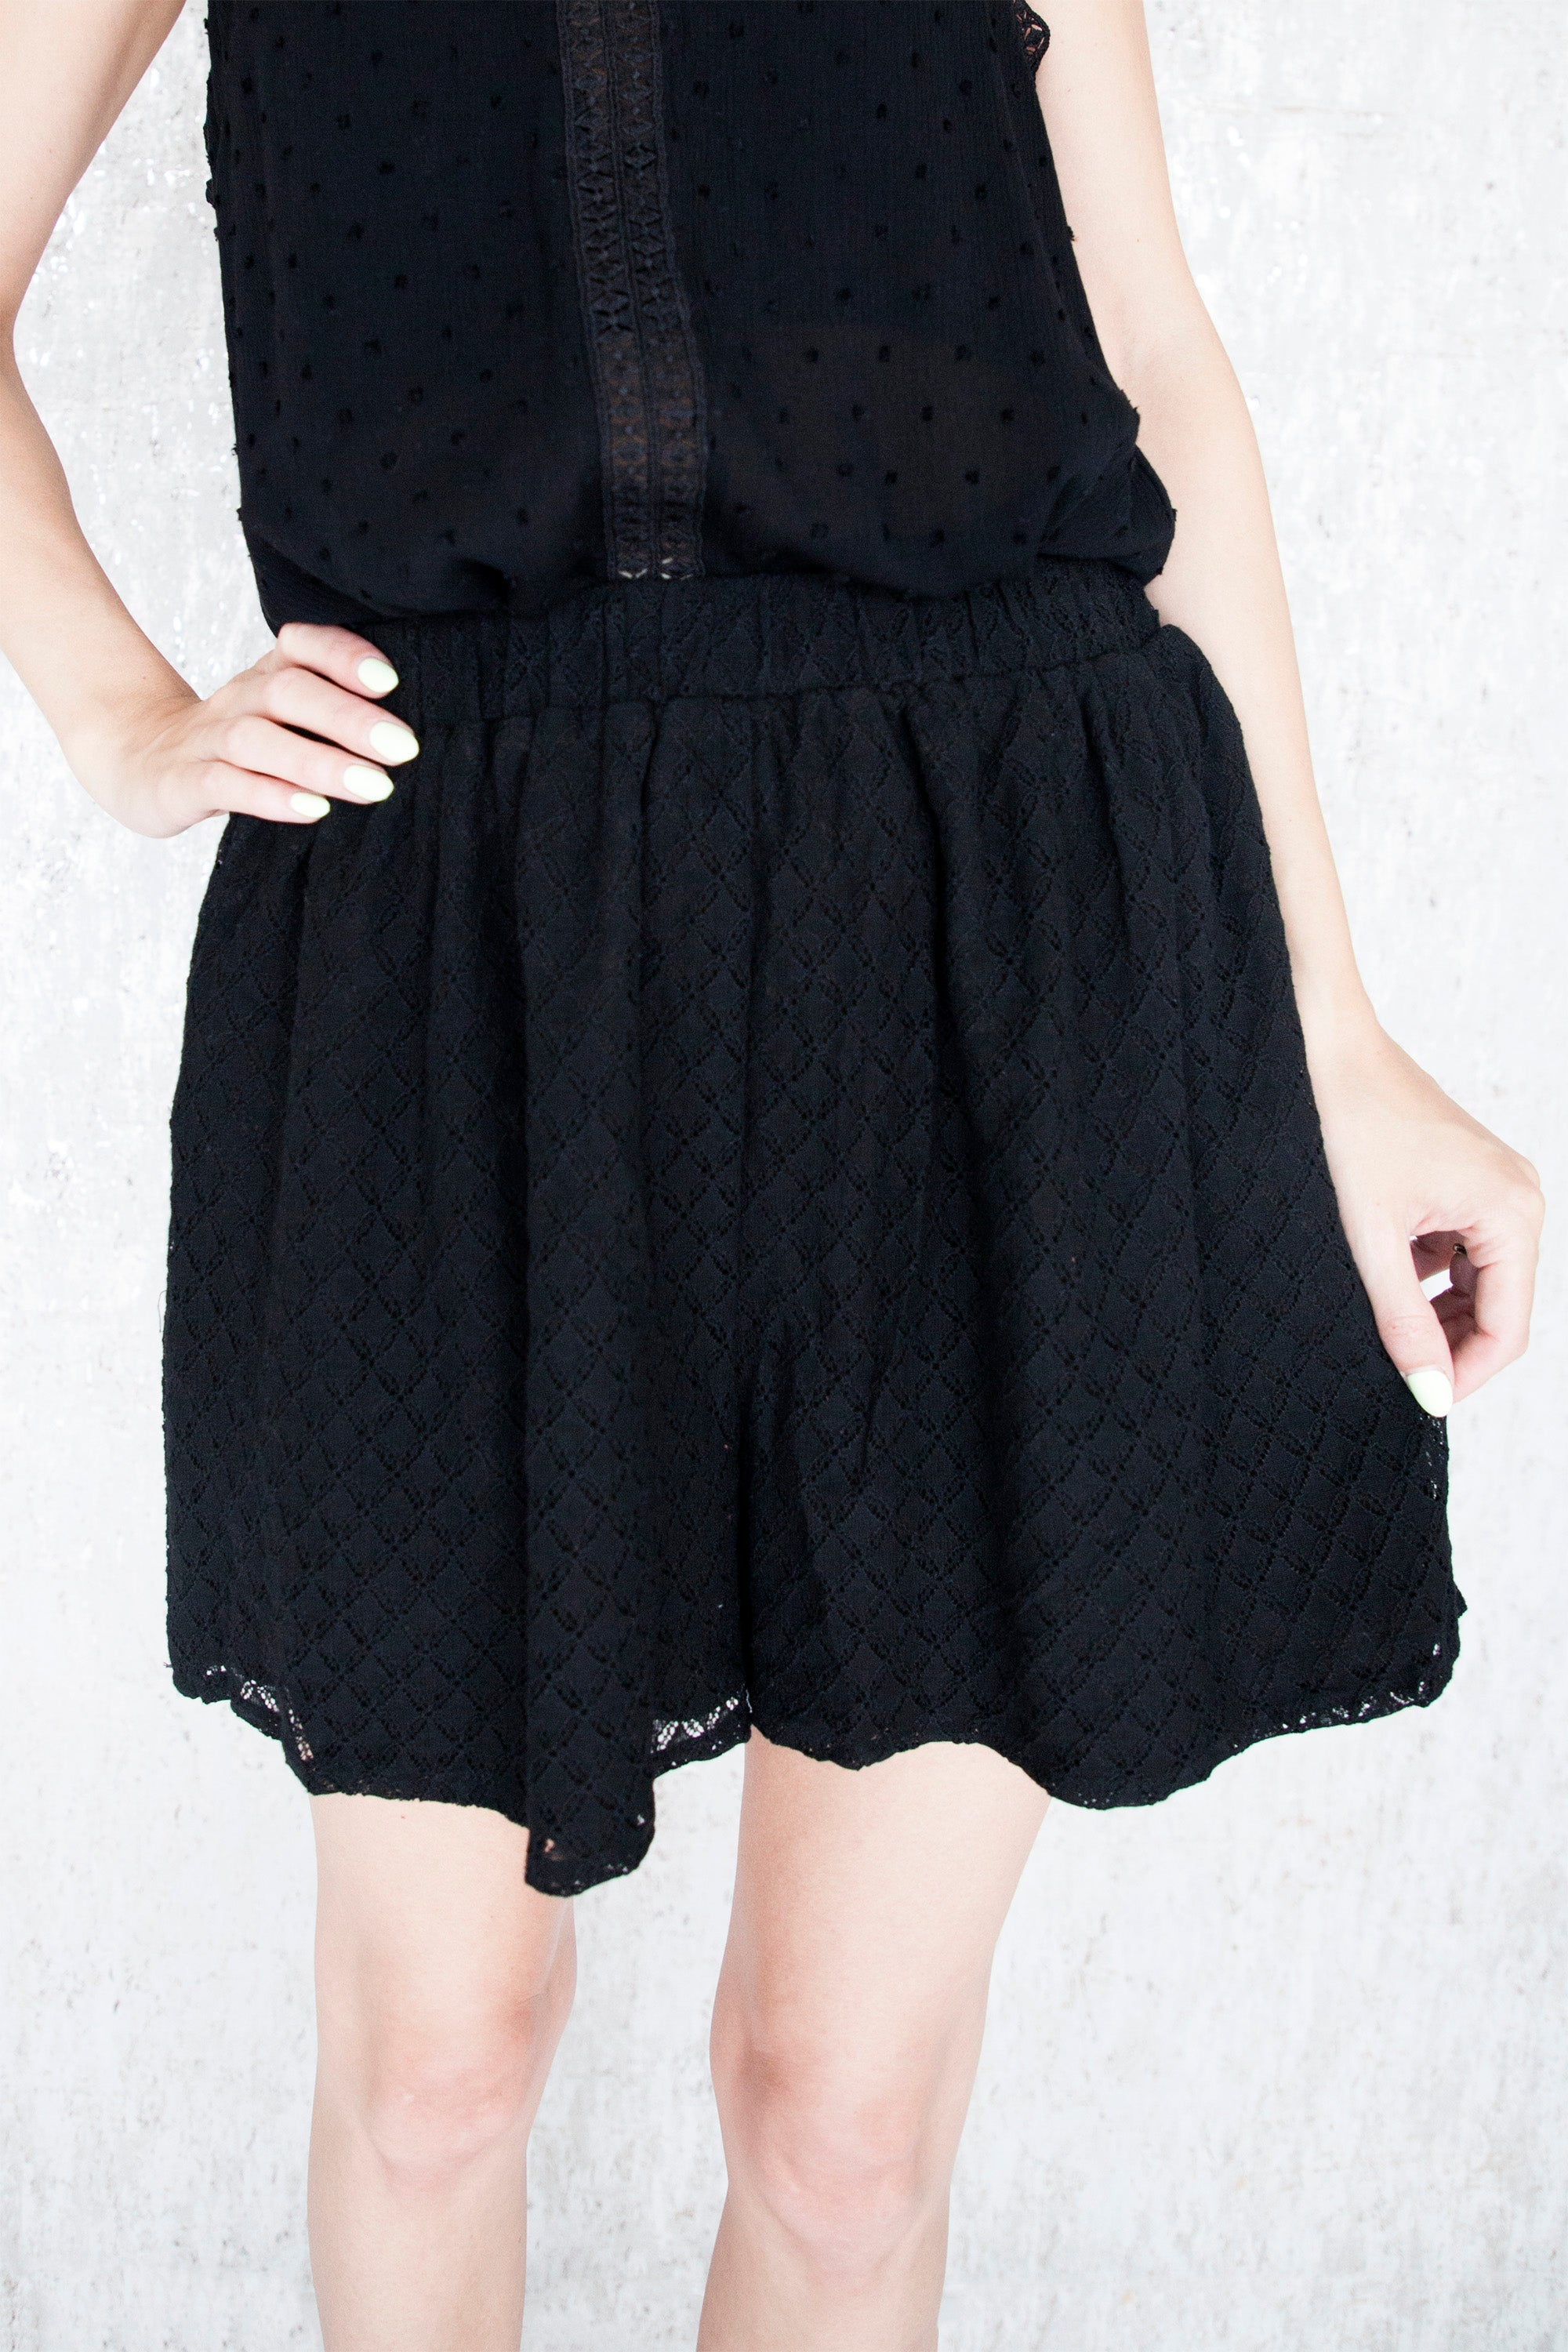 Make It Short Lace Black - Short